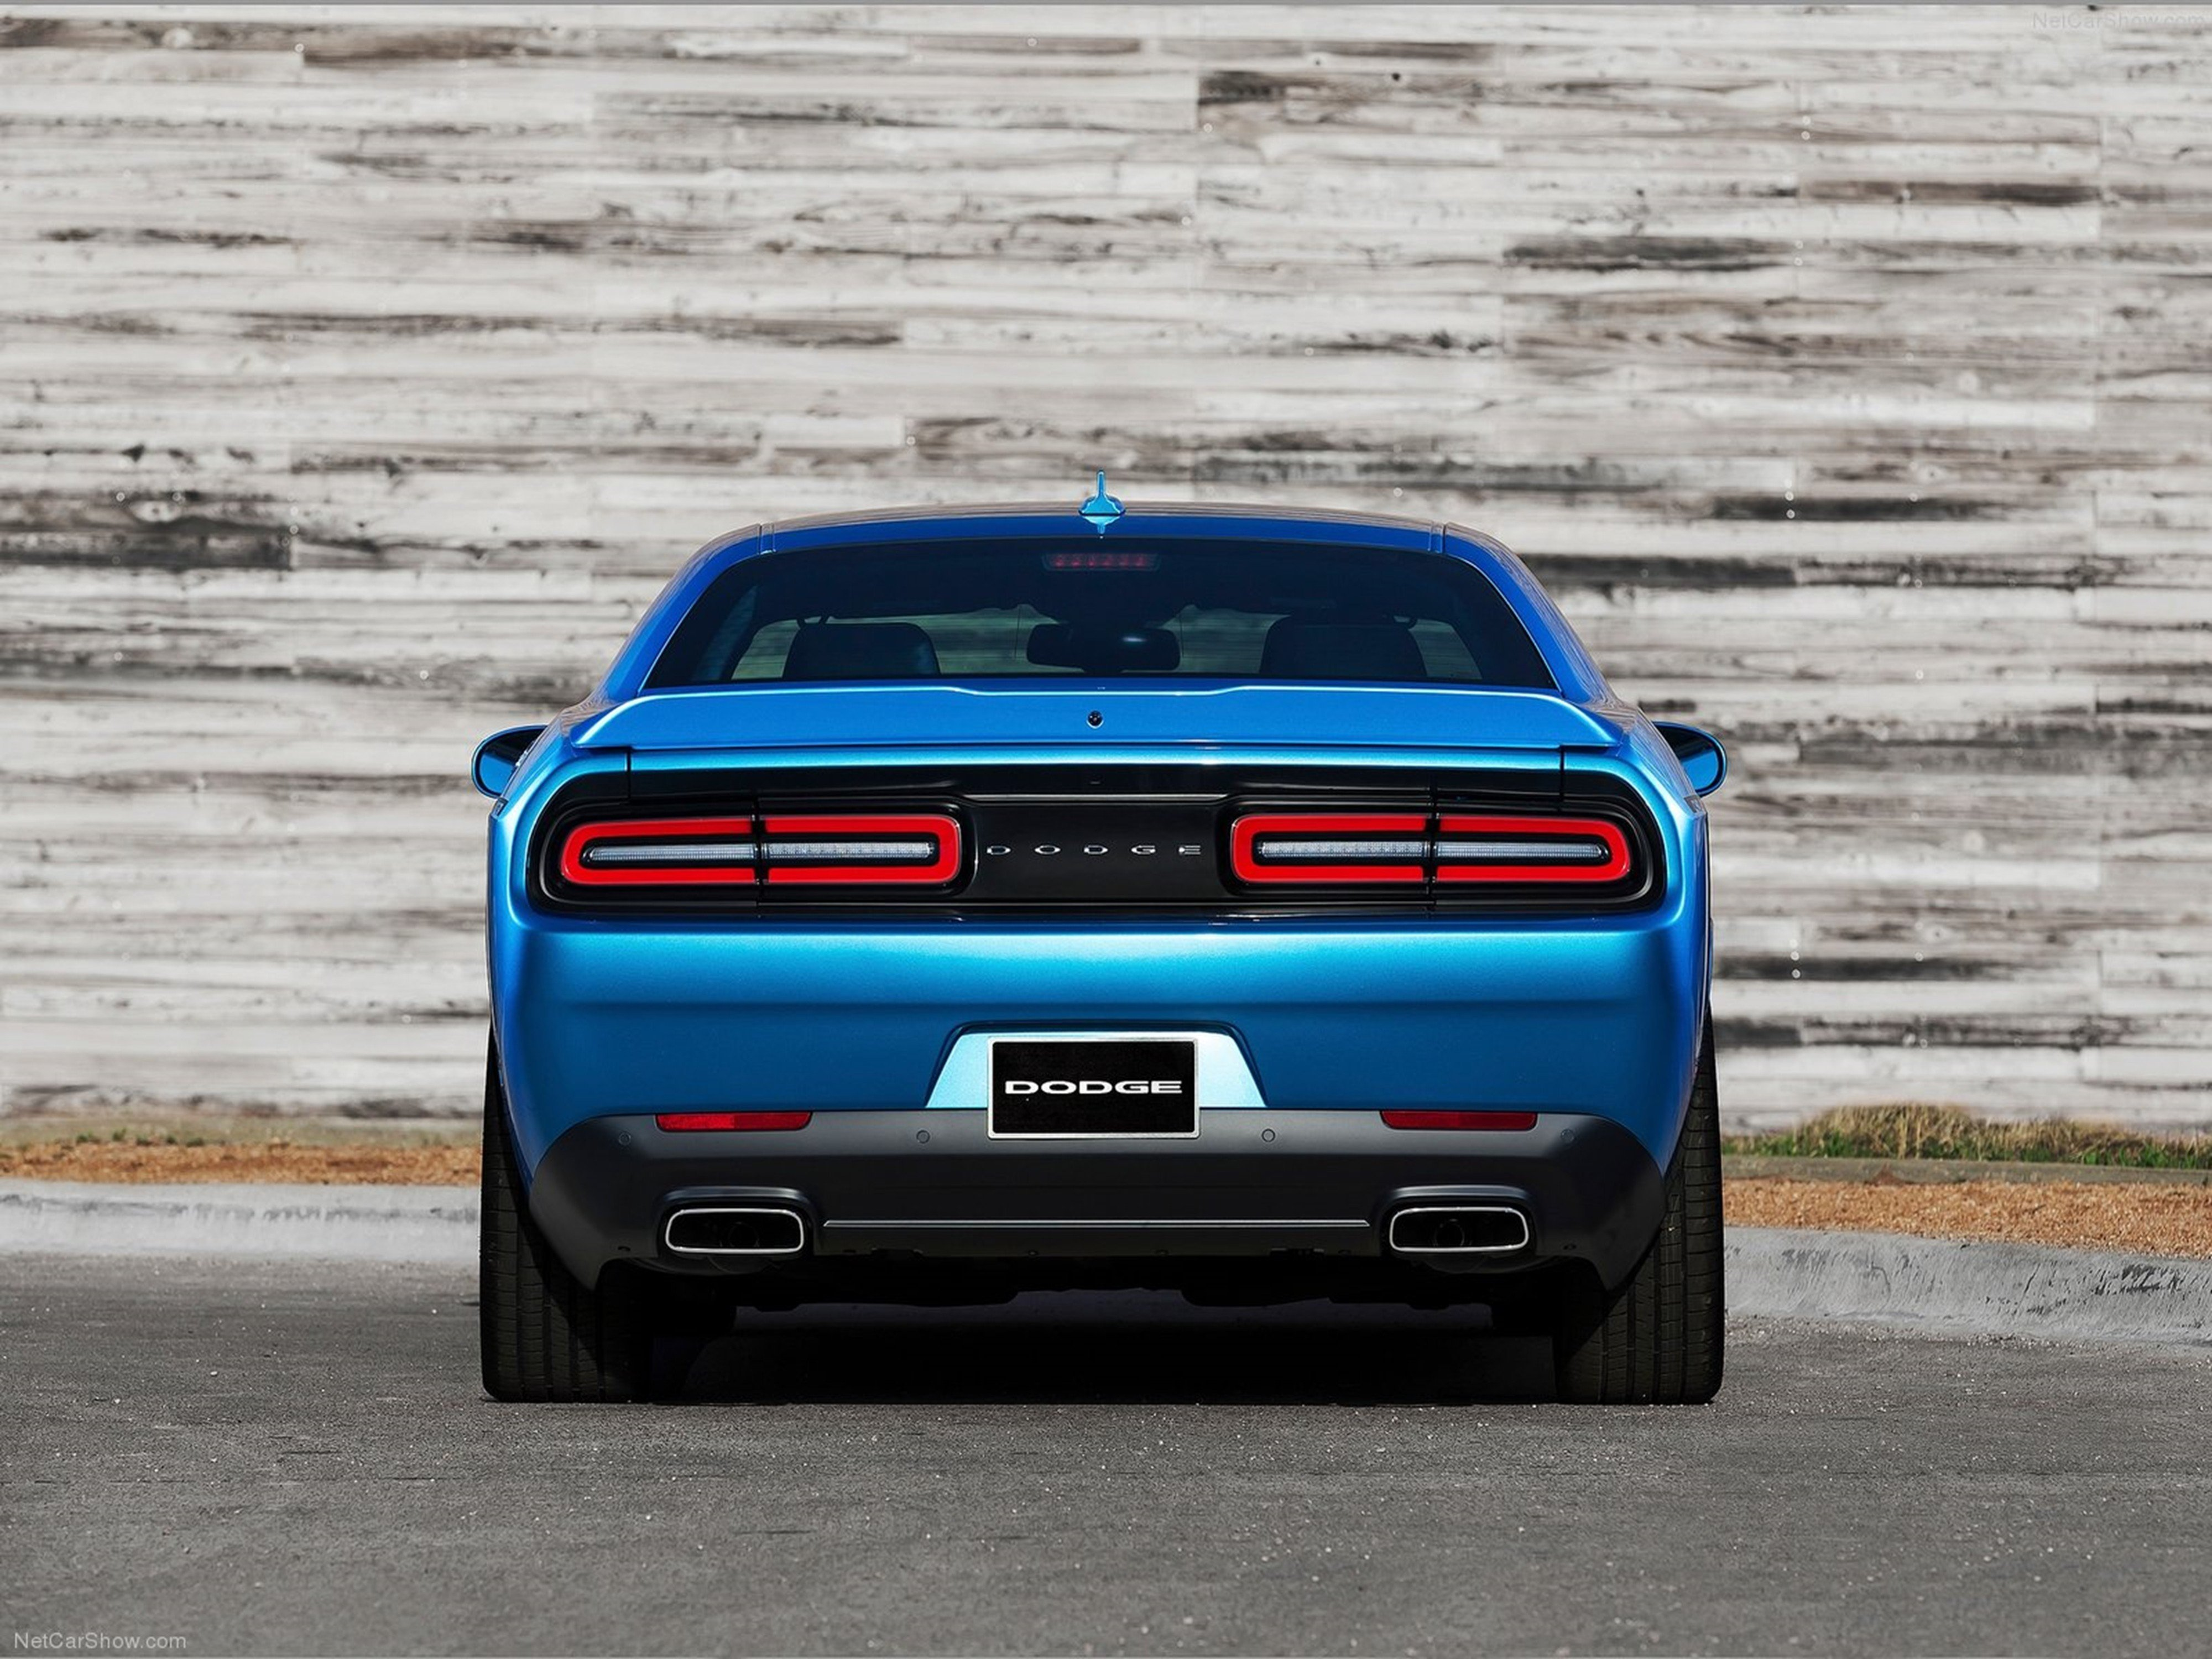 Dodge Challenger 2015 Muscle Car Wallpaper Rear Blue 4000x3000